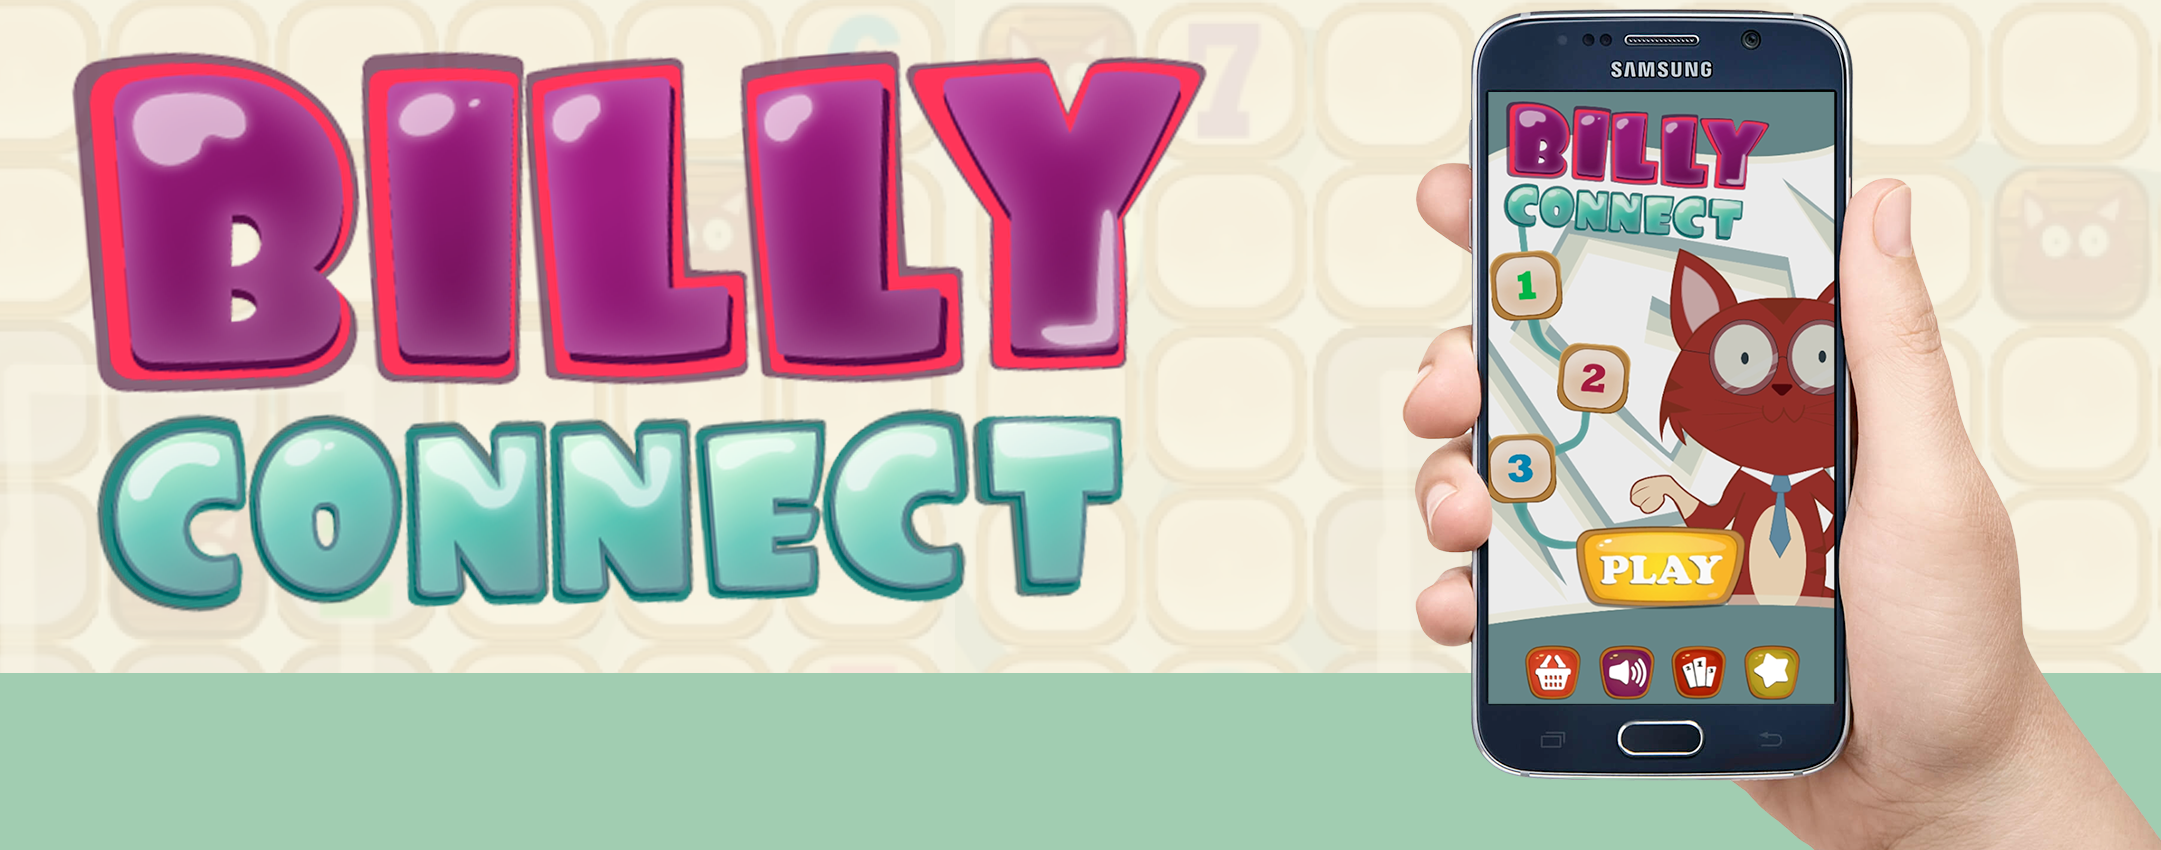 Billy Connect – Line Puzzle